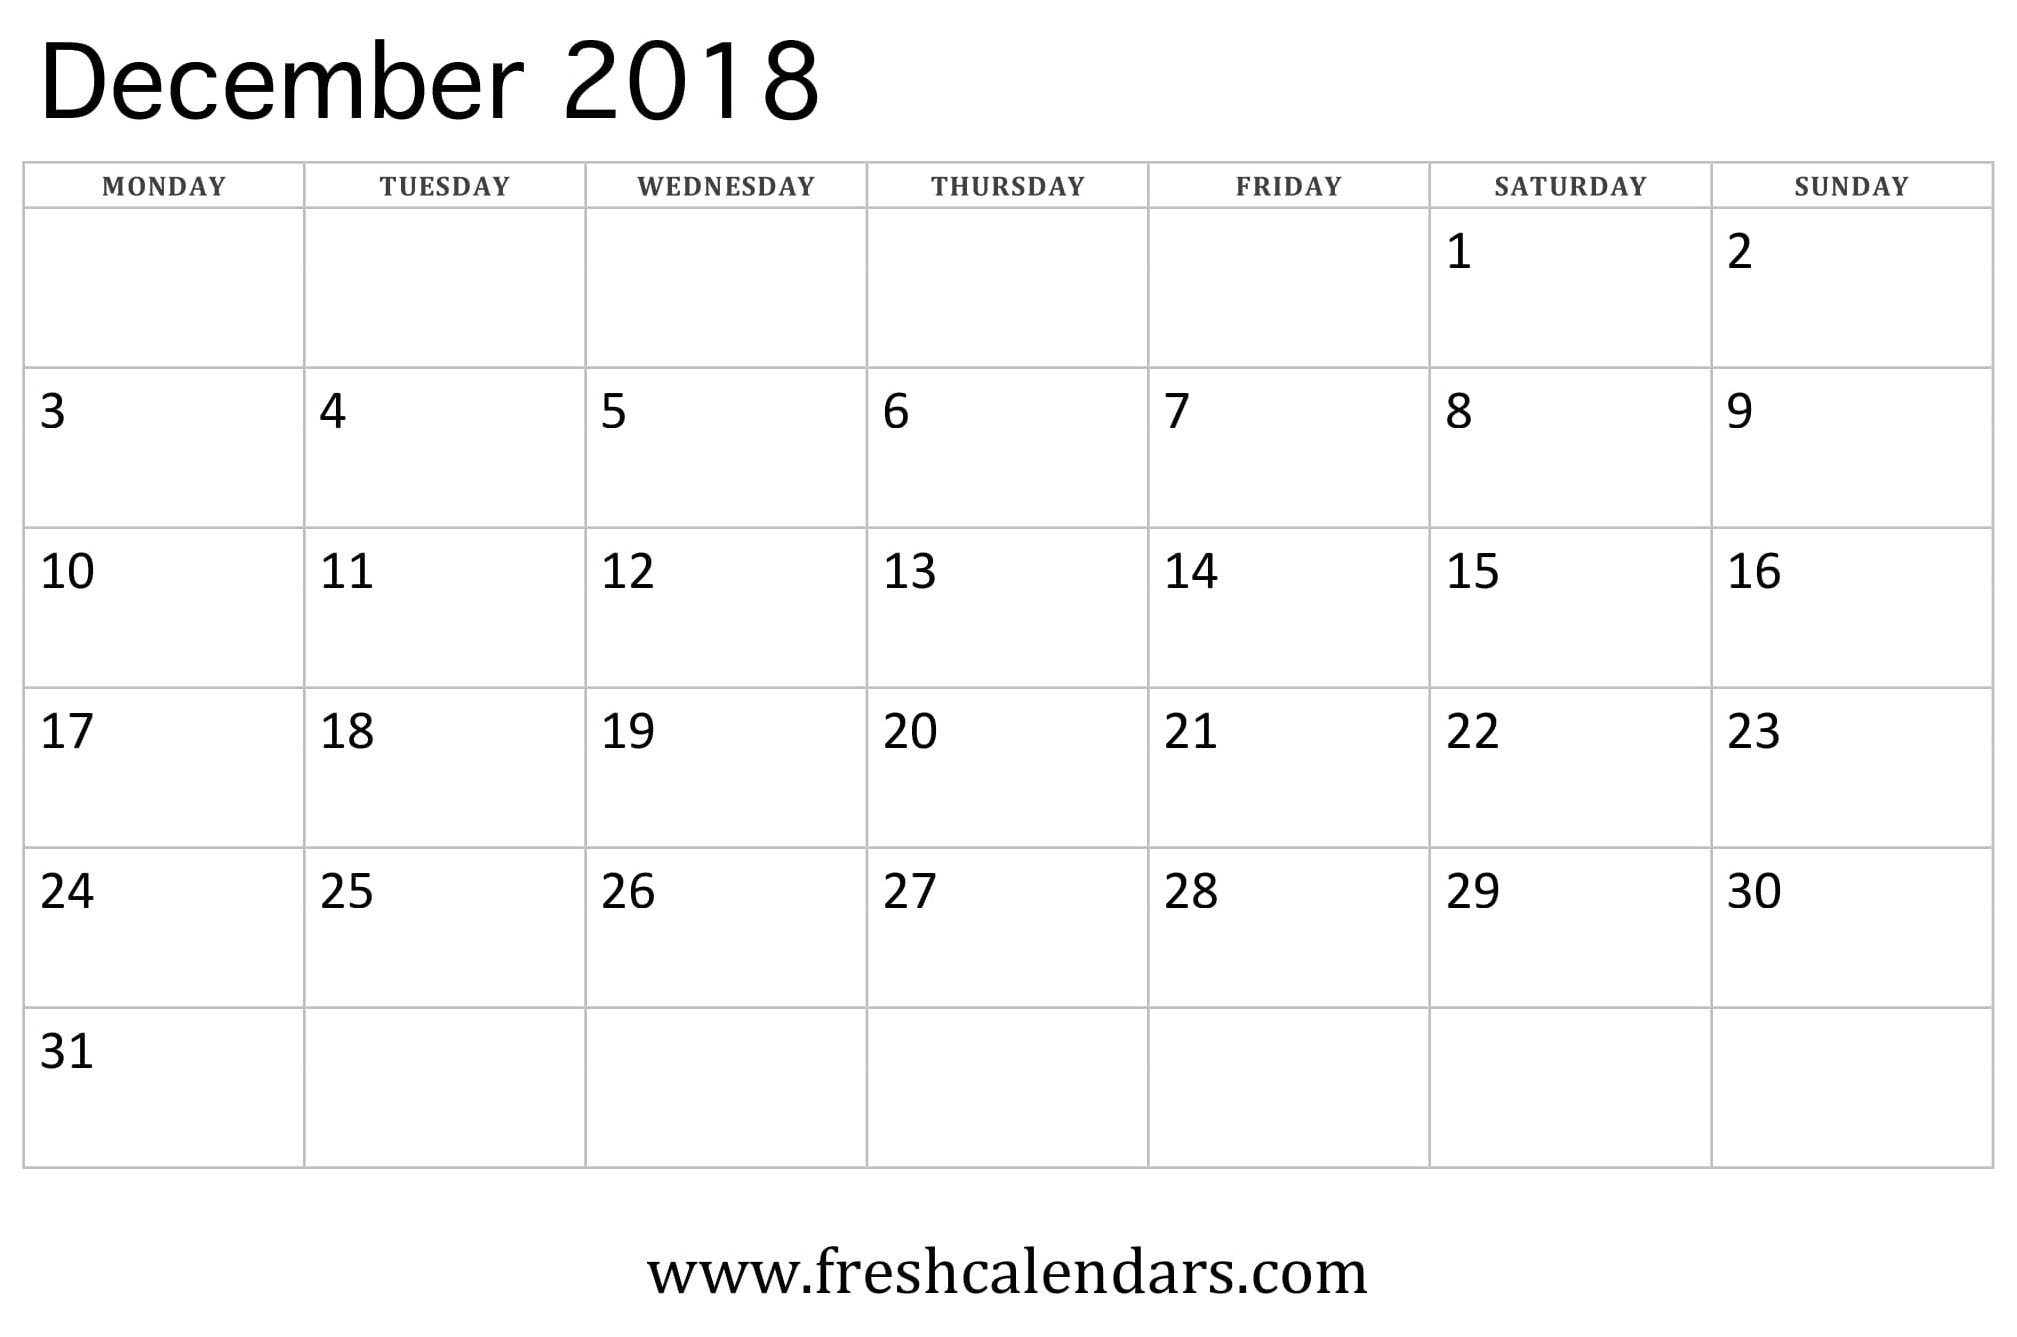 December 2018 Calendar Printable - Fresh Calendars for Printable Calendars By Month And Week